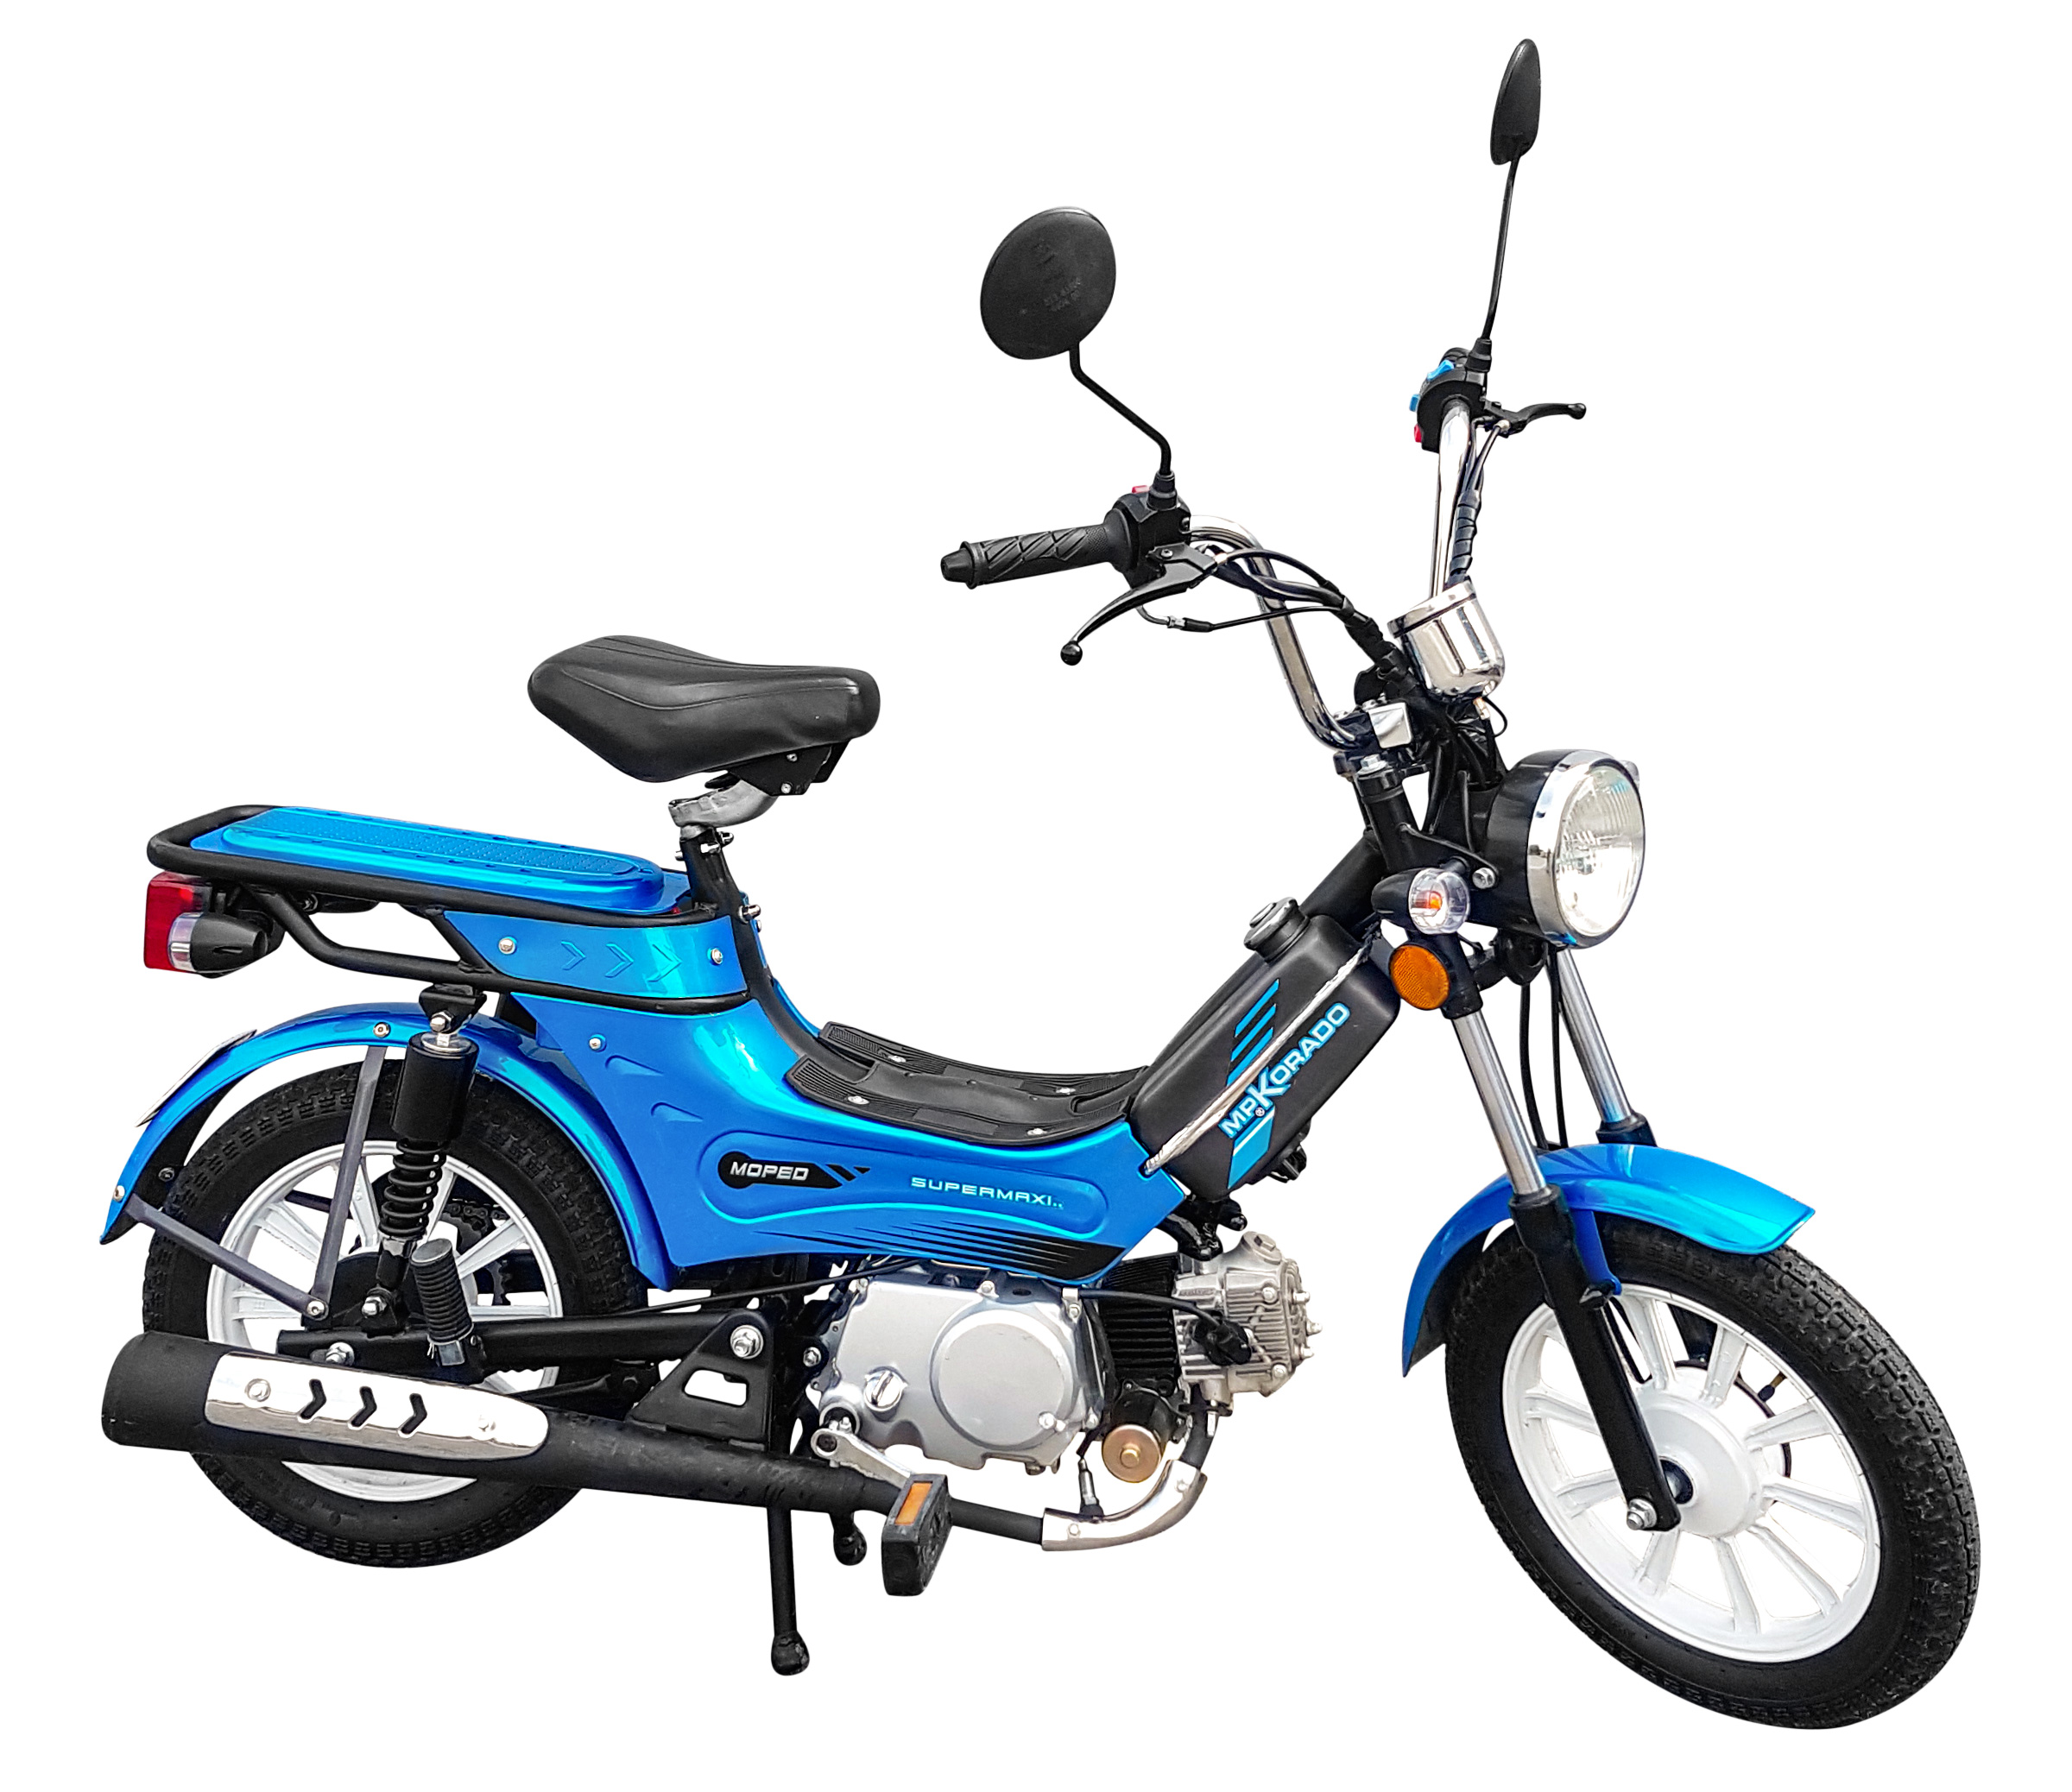 Moped-korado_3